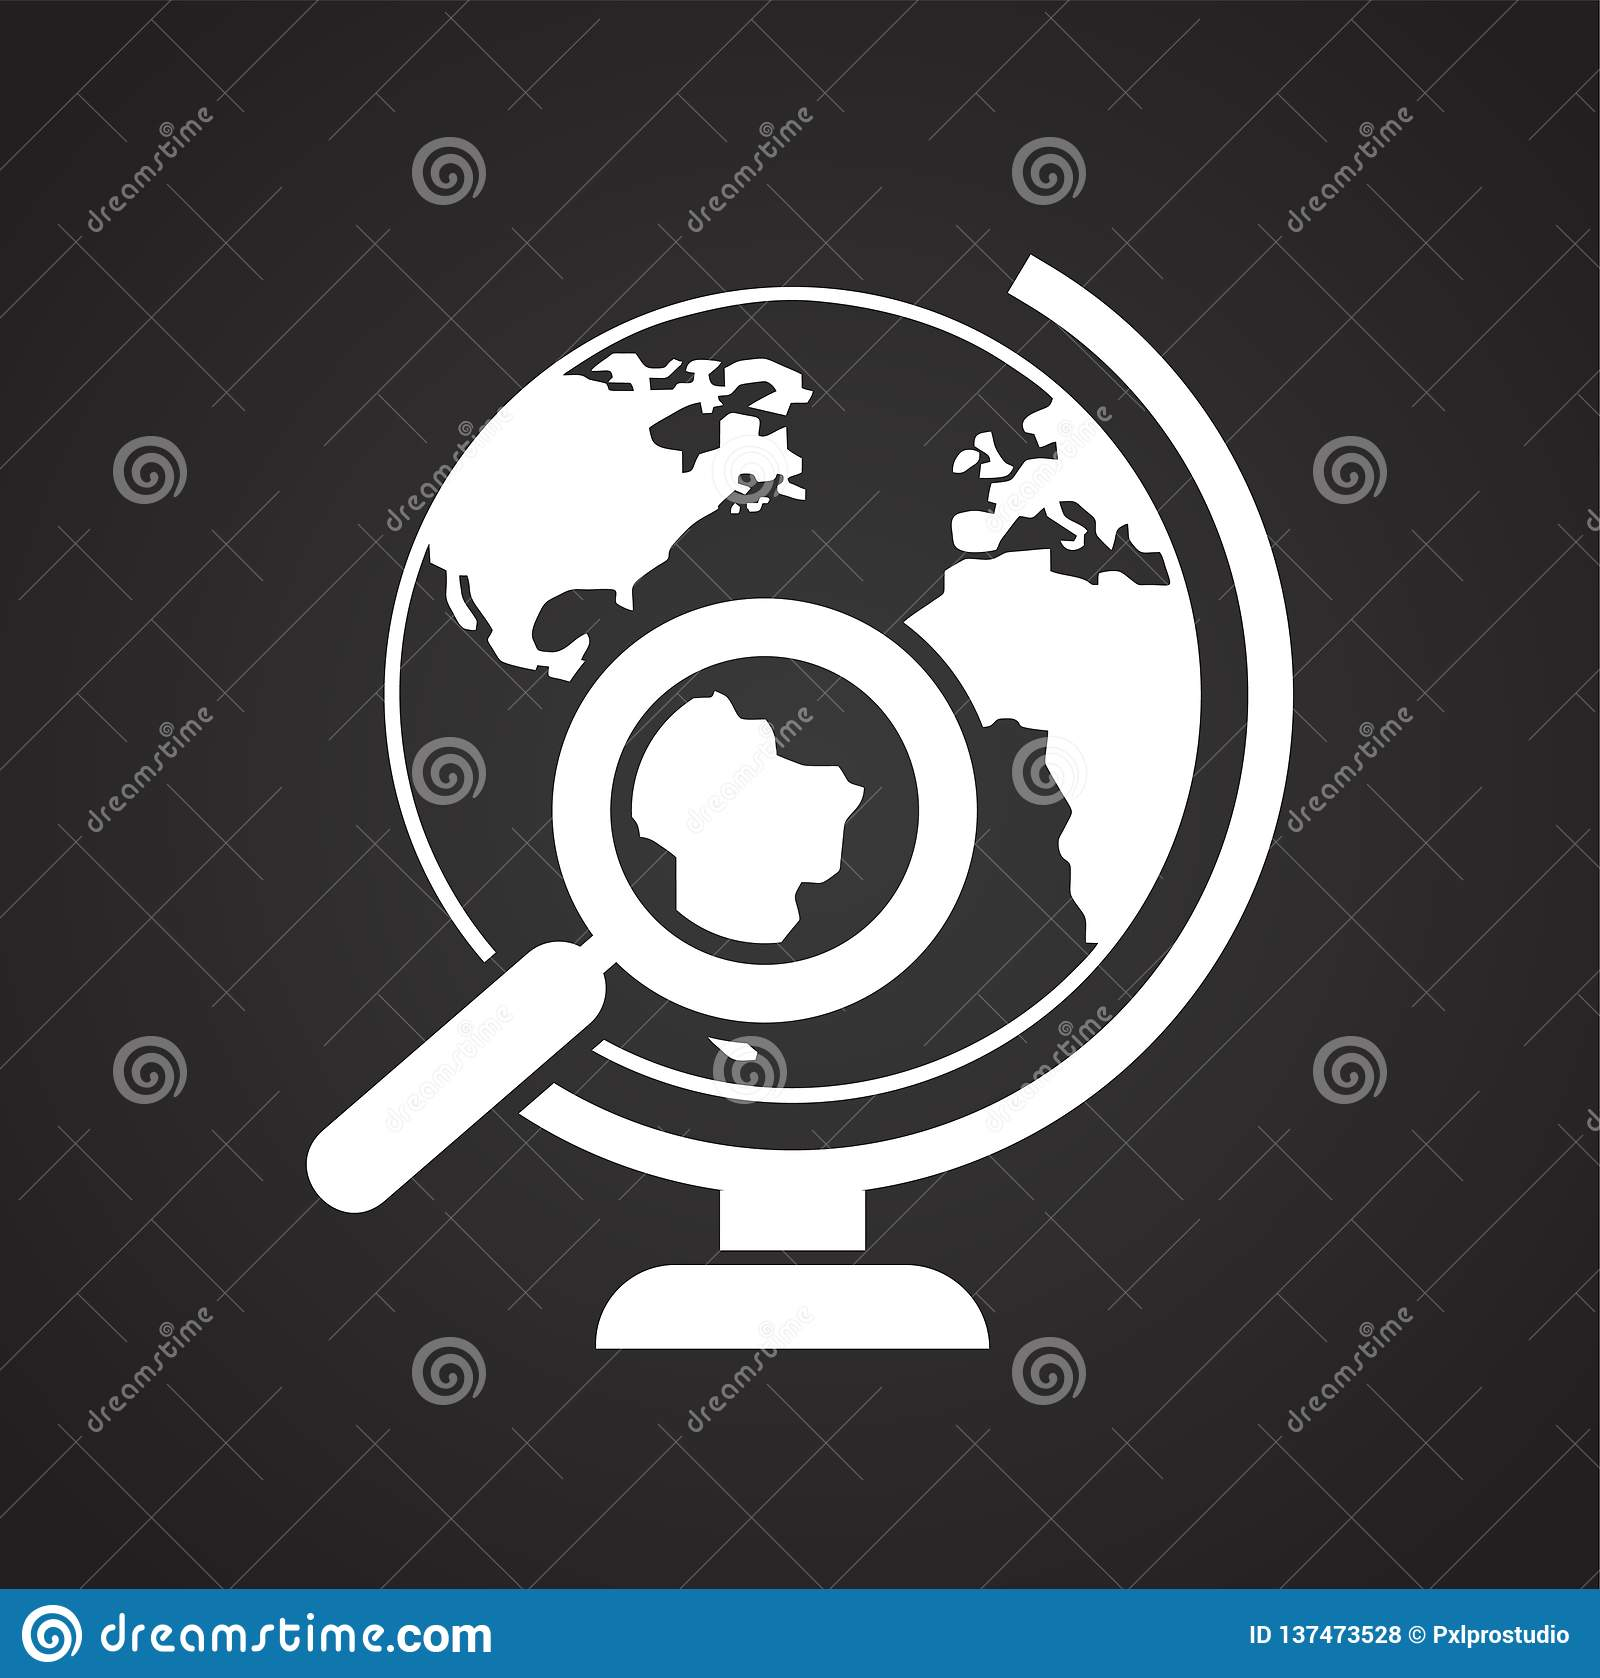 Globe Icon On Black Background For Graphic And Web Design